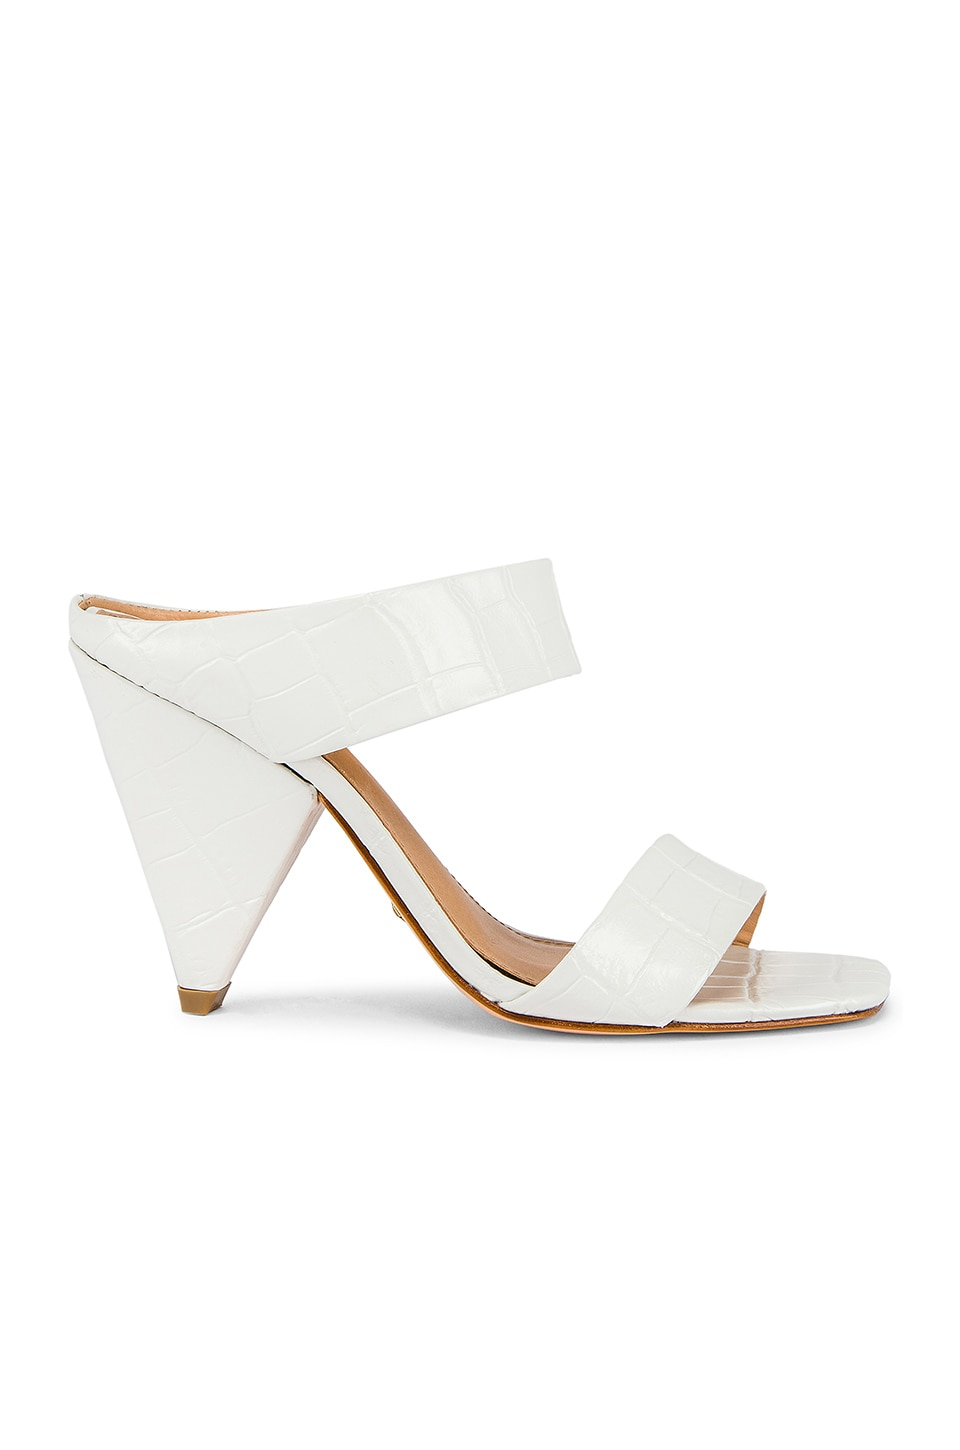 RAYE Gaze Heel in White